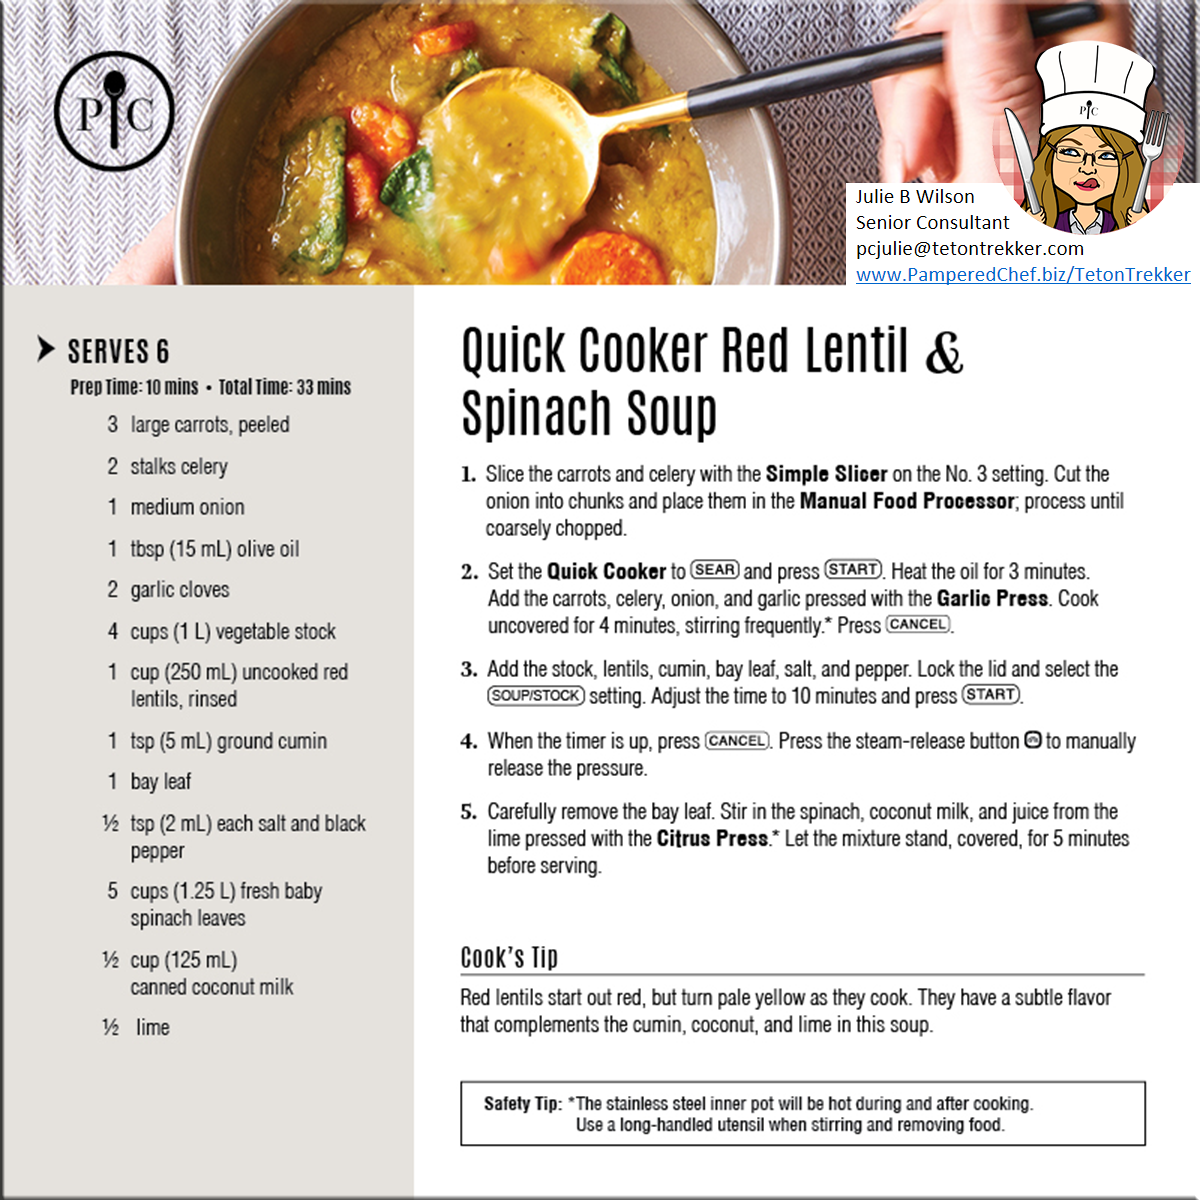 Quick-Cooker-Red-Lentil-Spinach-Soup